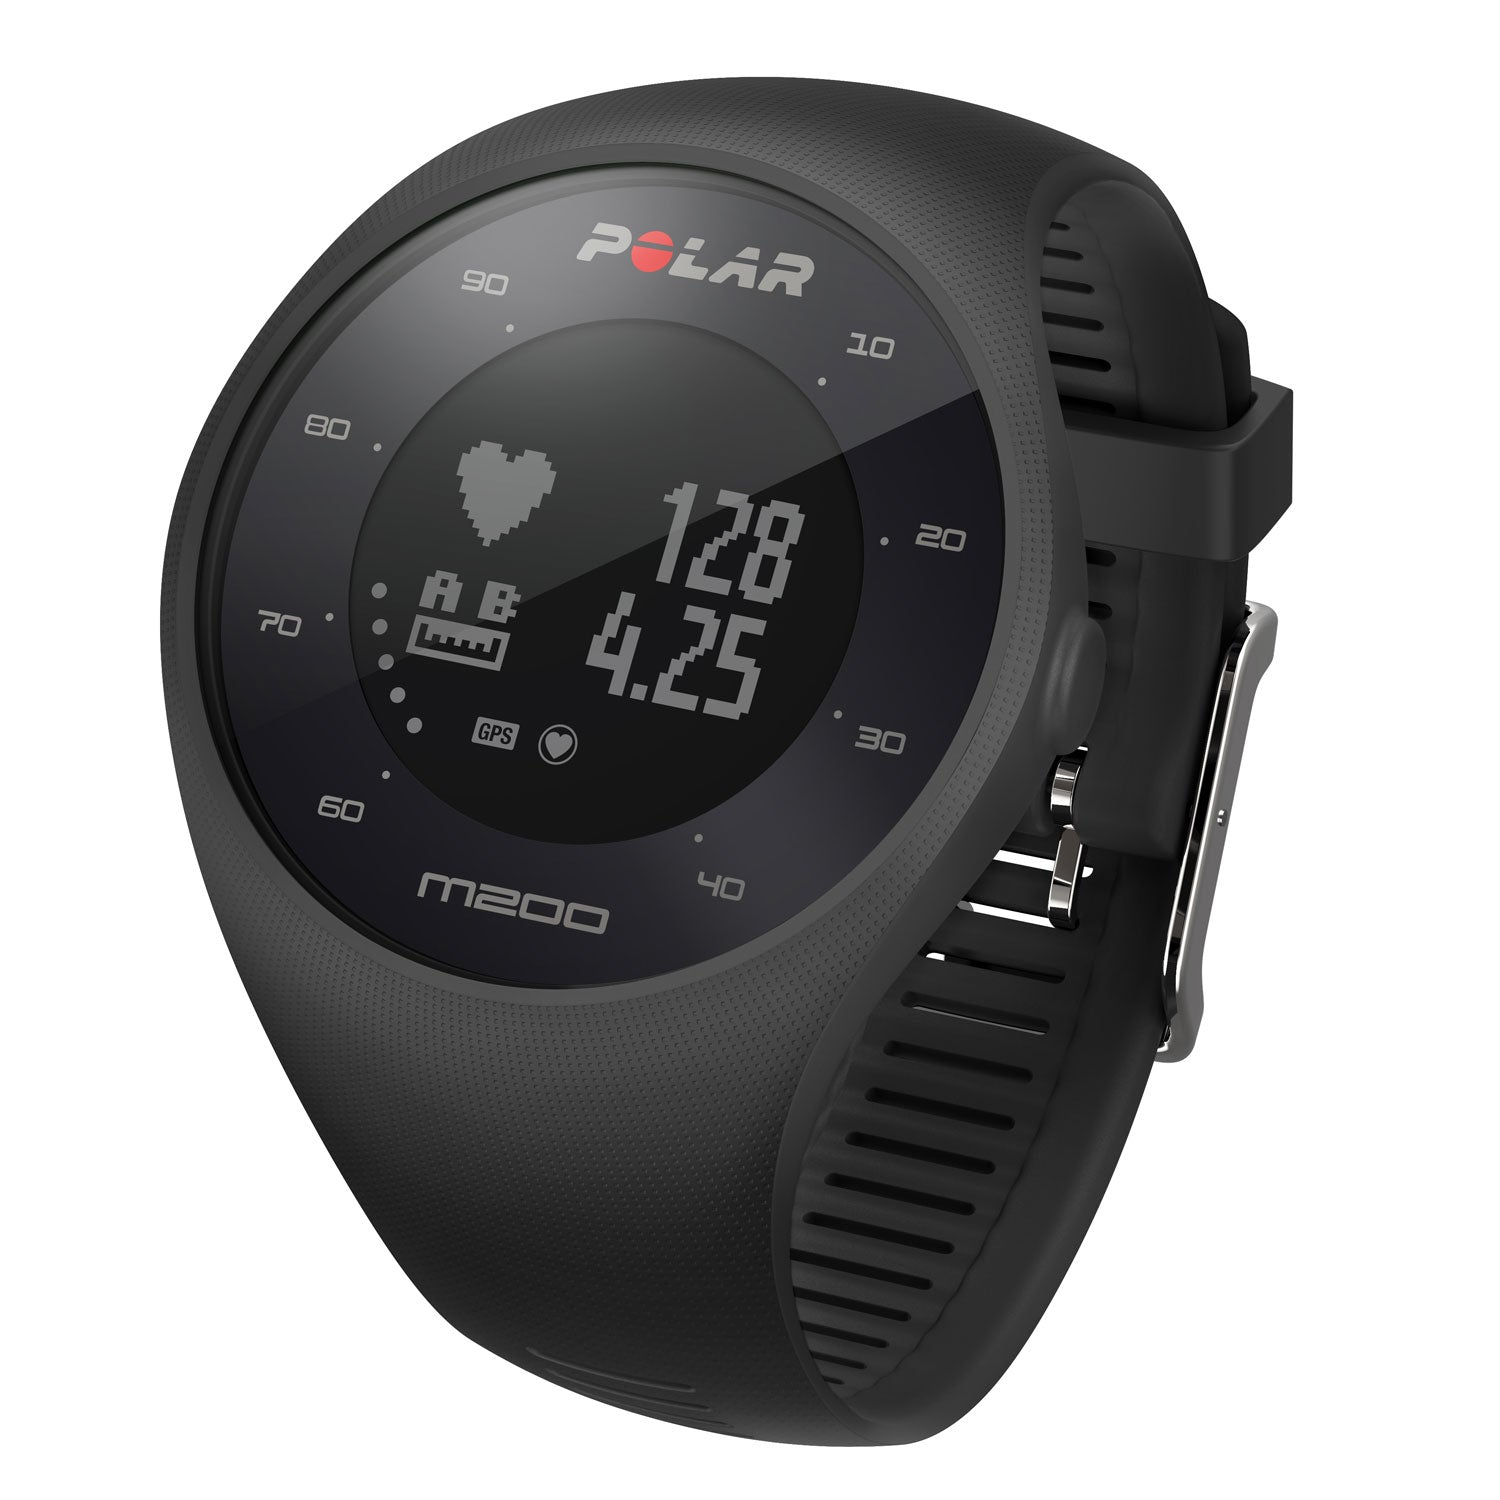 POLAR M200 SPORTS WATCH FOR RUNNING WITH 24/7 ACTIVITY TRACKER